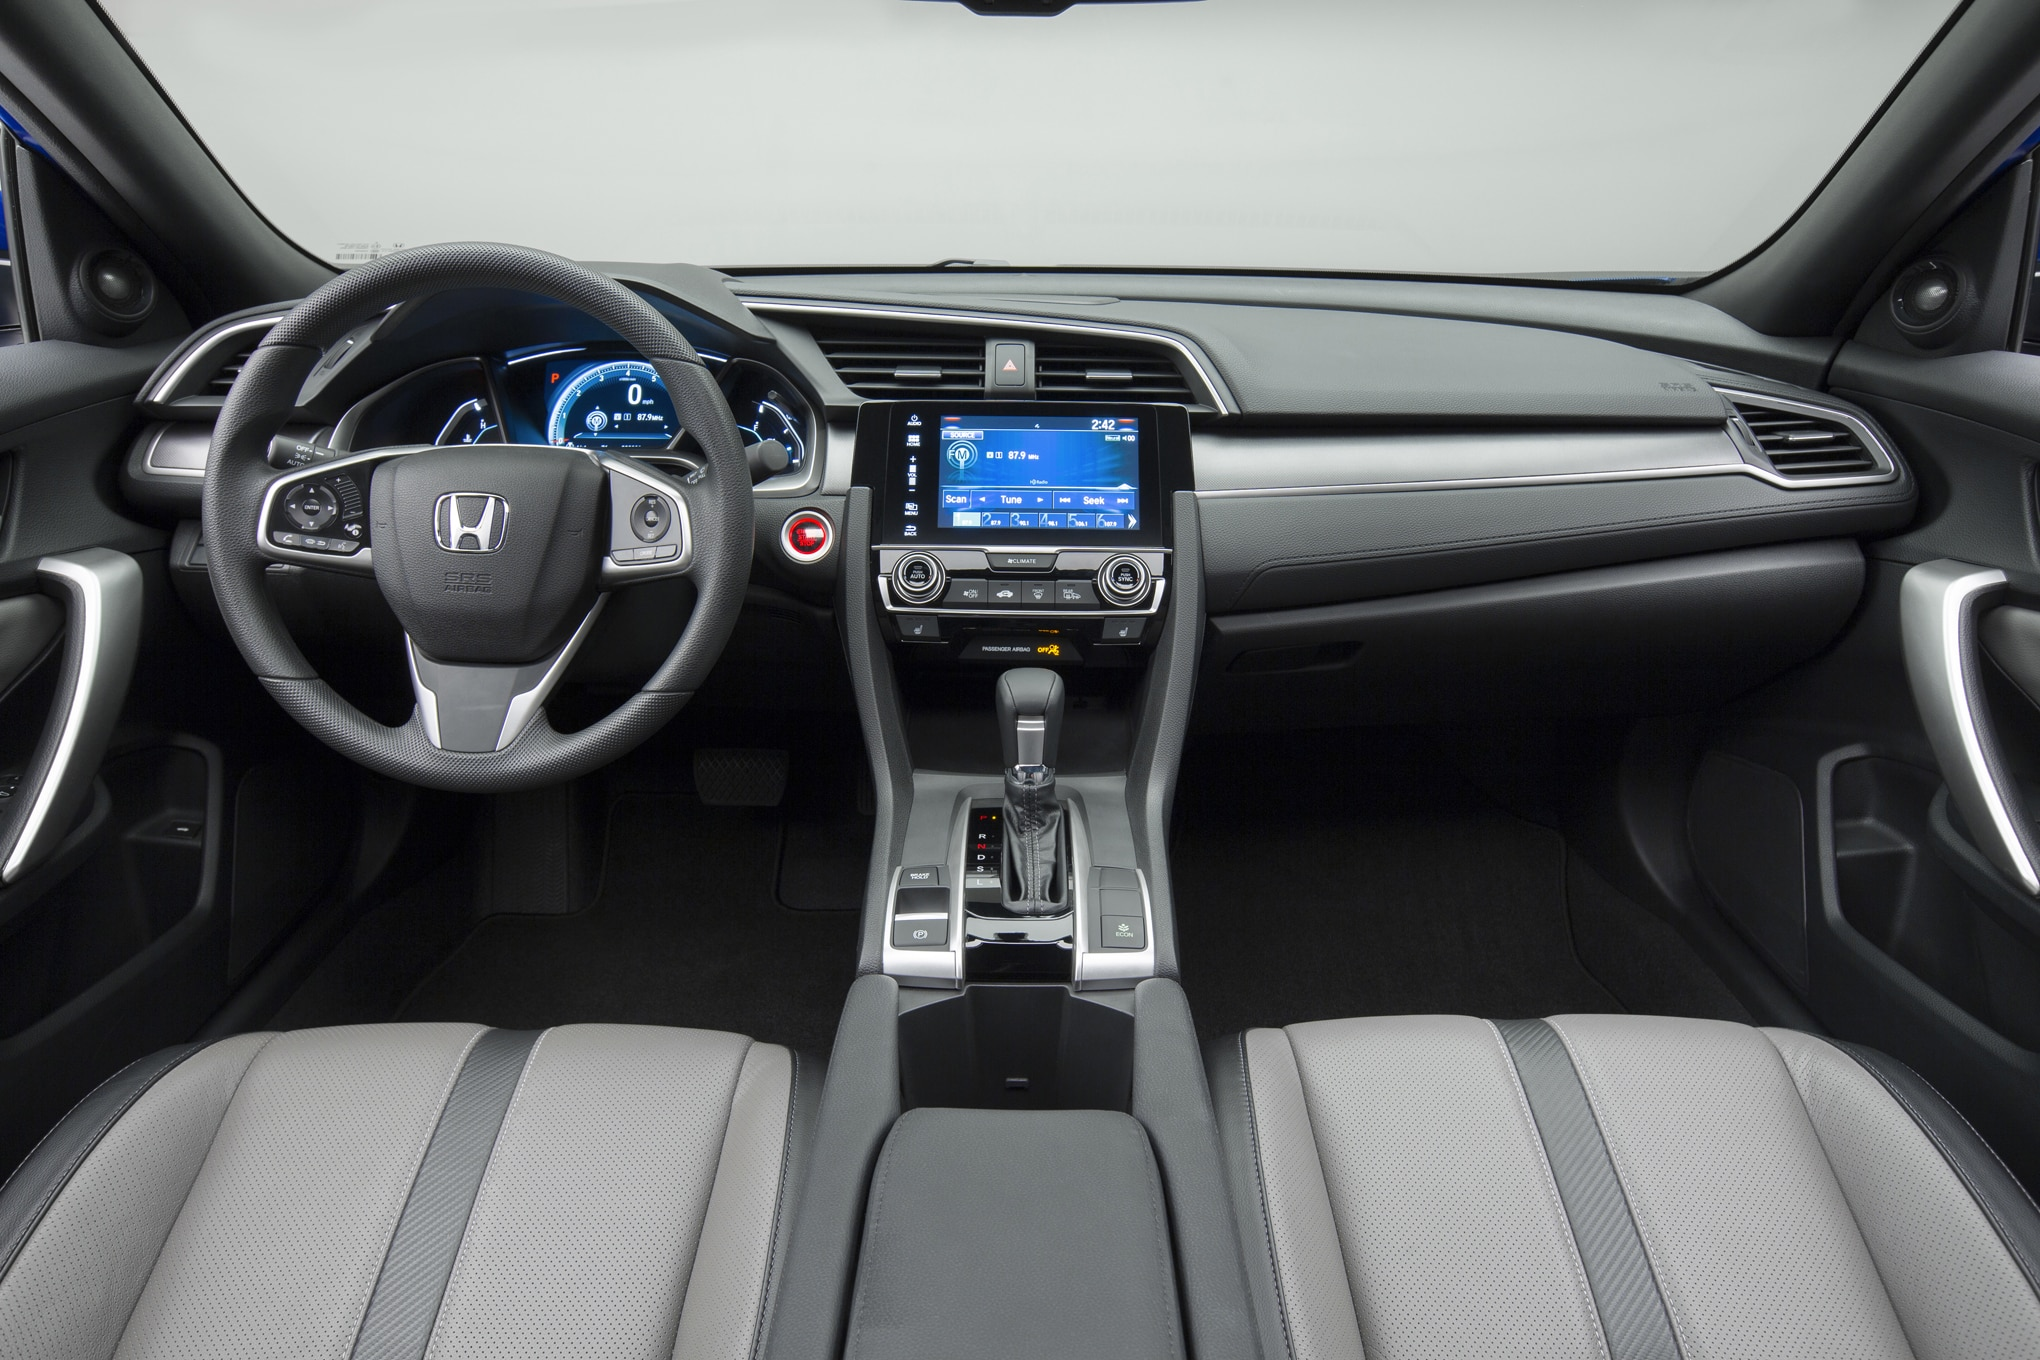 2016 honda civic coupe review automobile magazine - 2016 honda civic si coupe interior ...